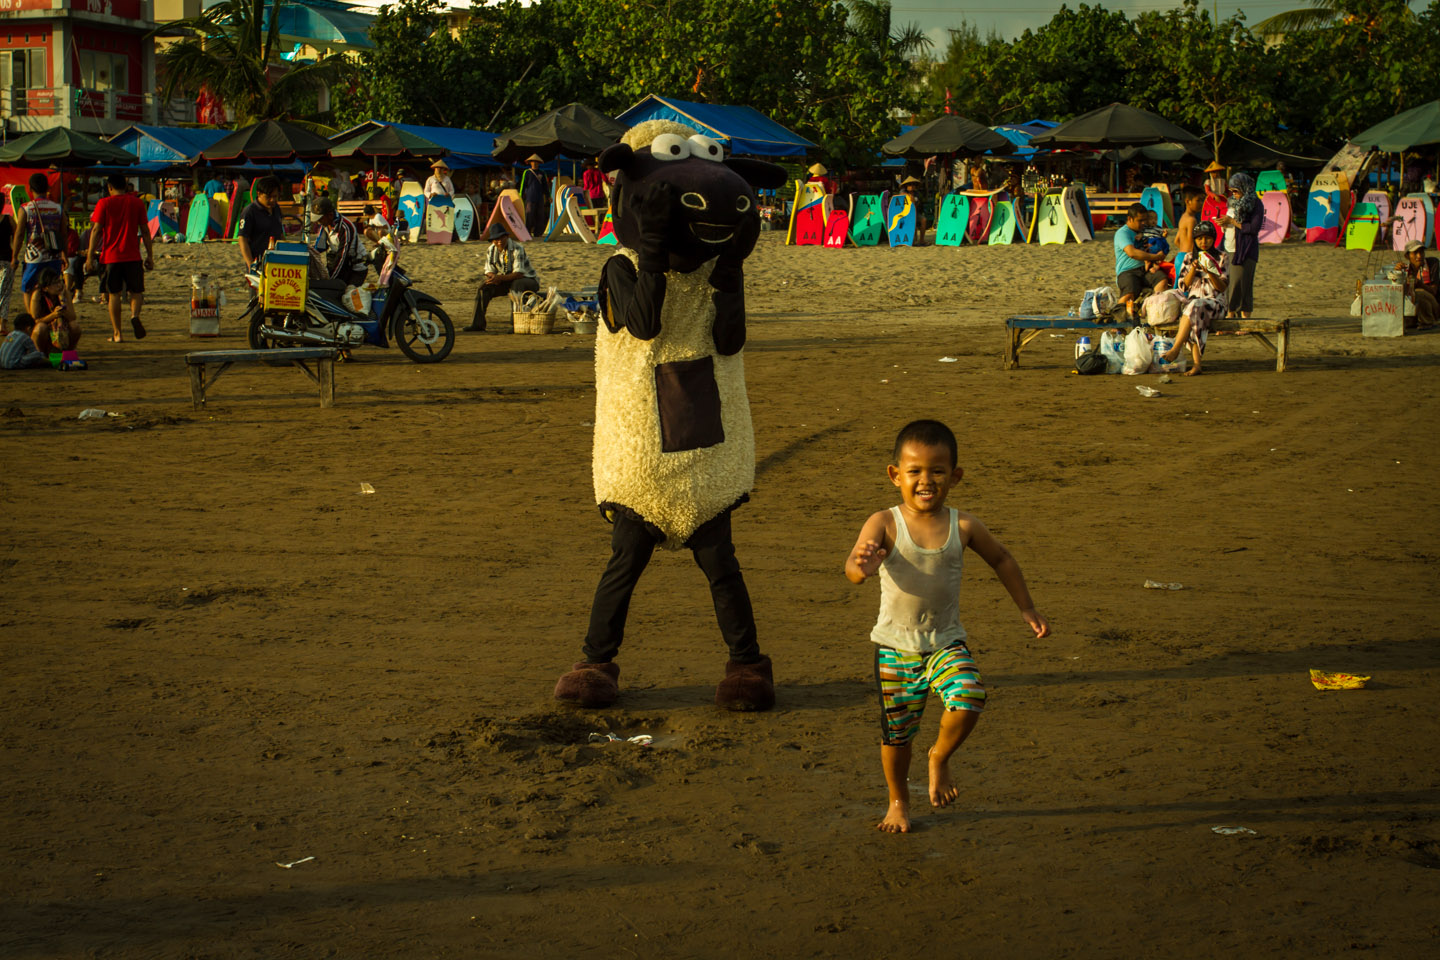 Men dressed as sheep scaring little kid during Ramadan Idul Fitri Pangandaran beach Java Indonesia Indonesien